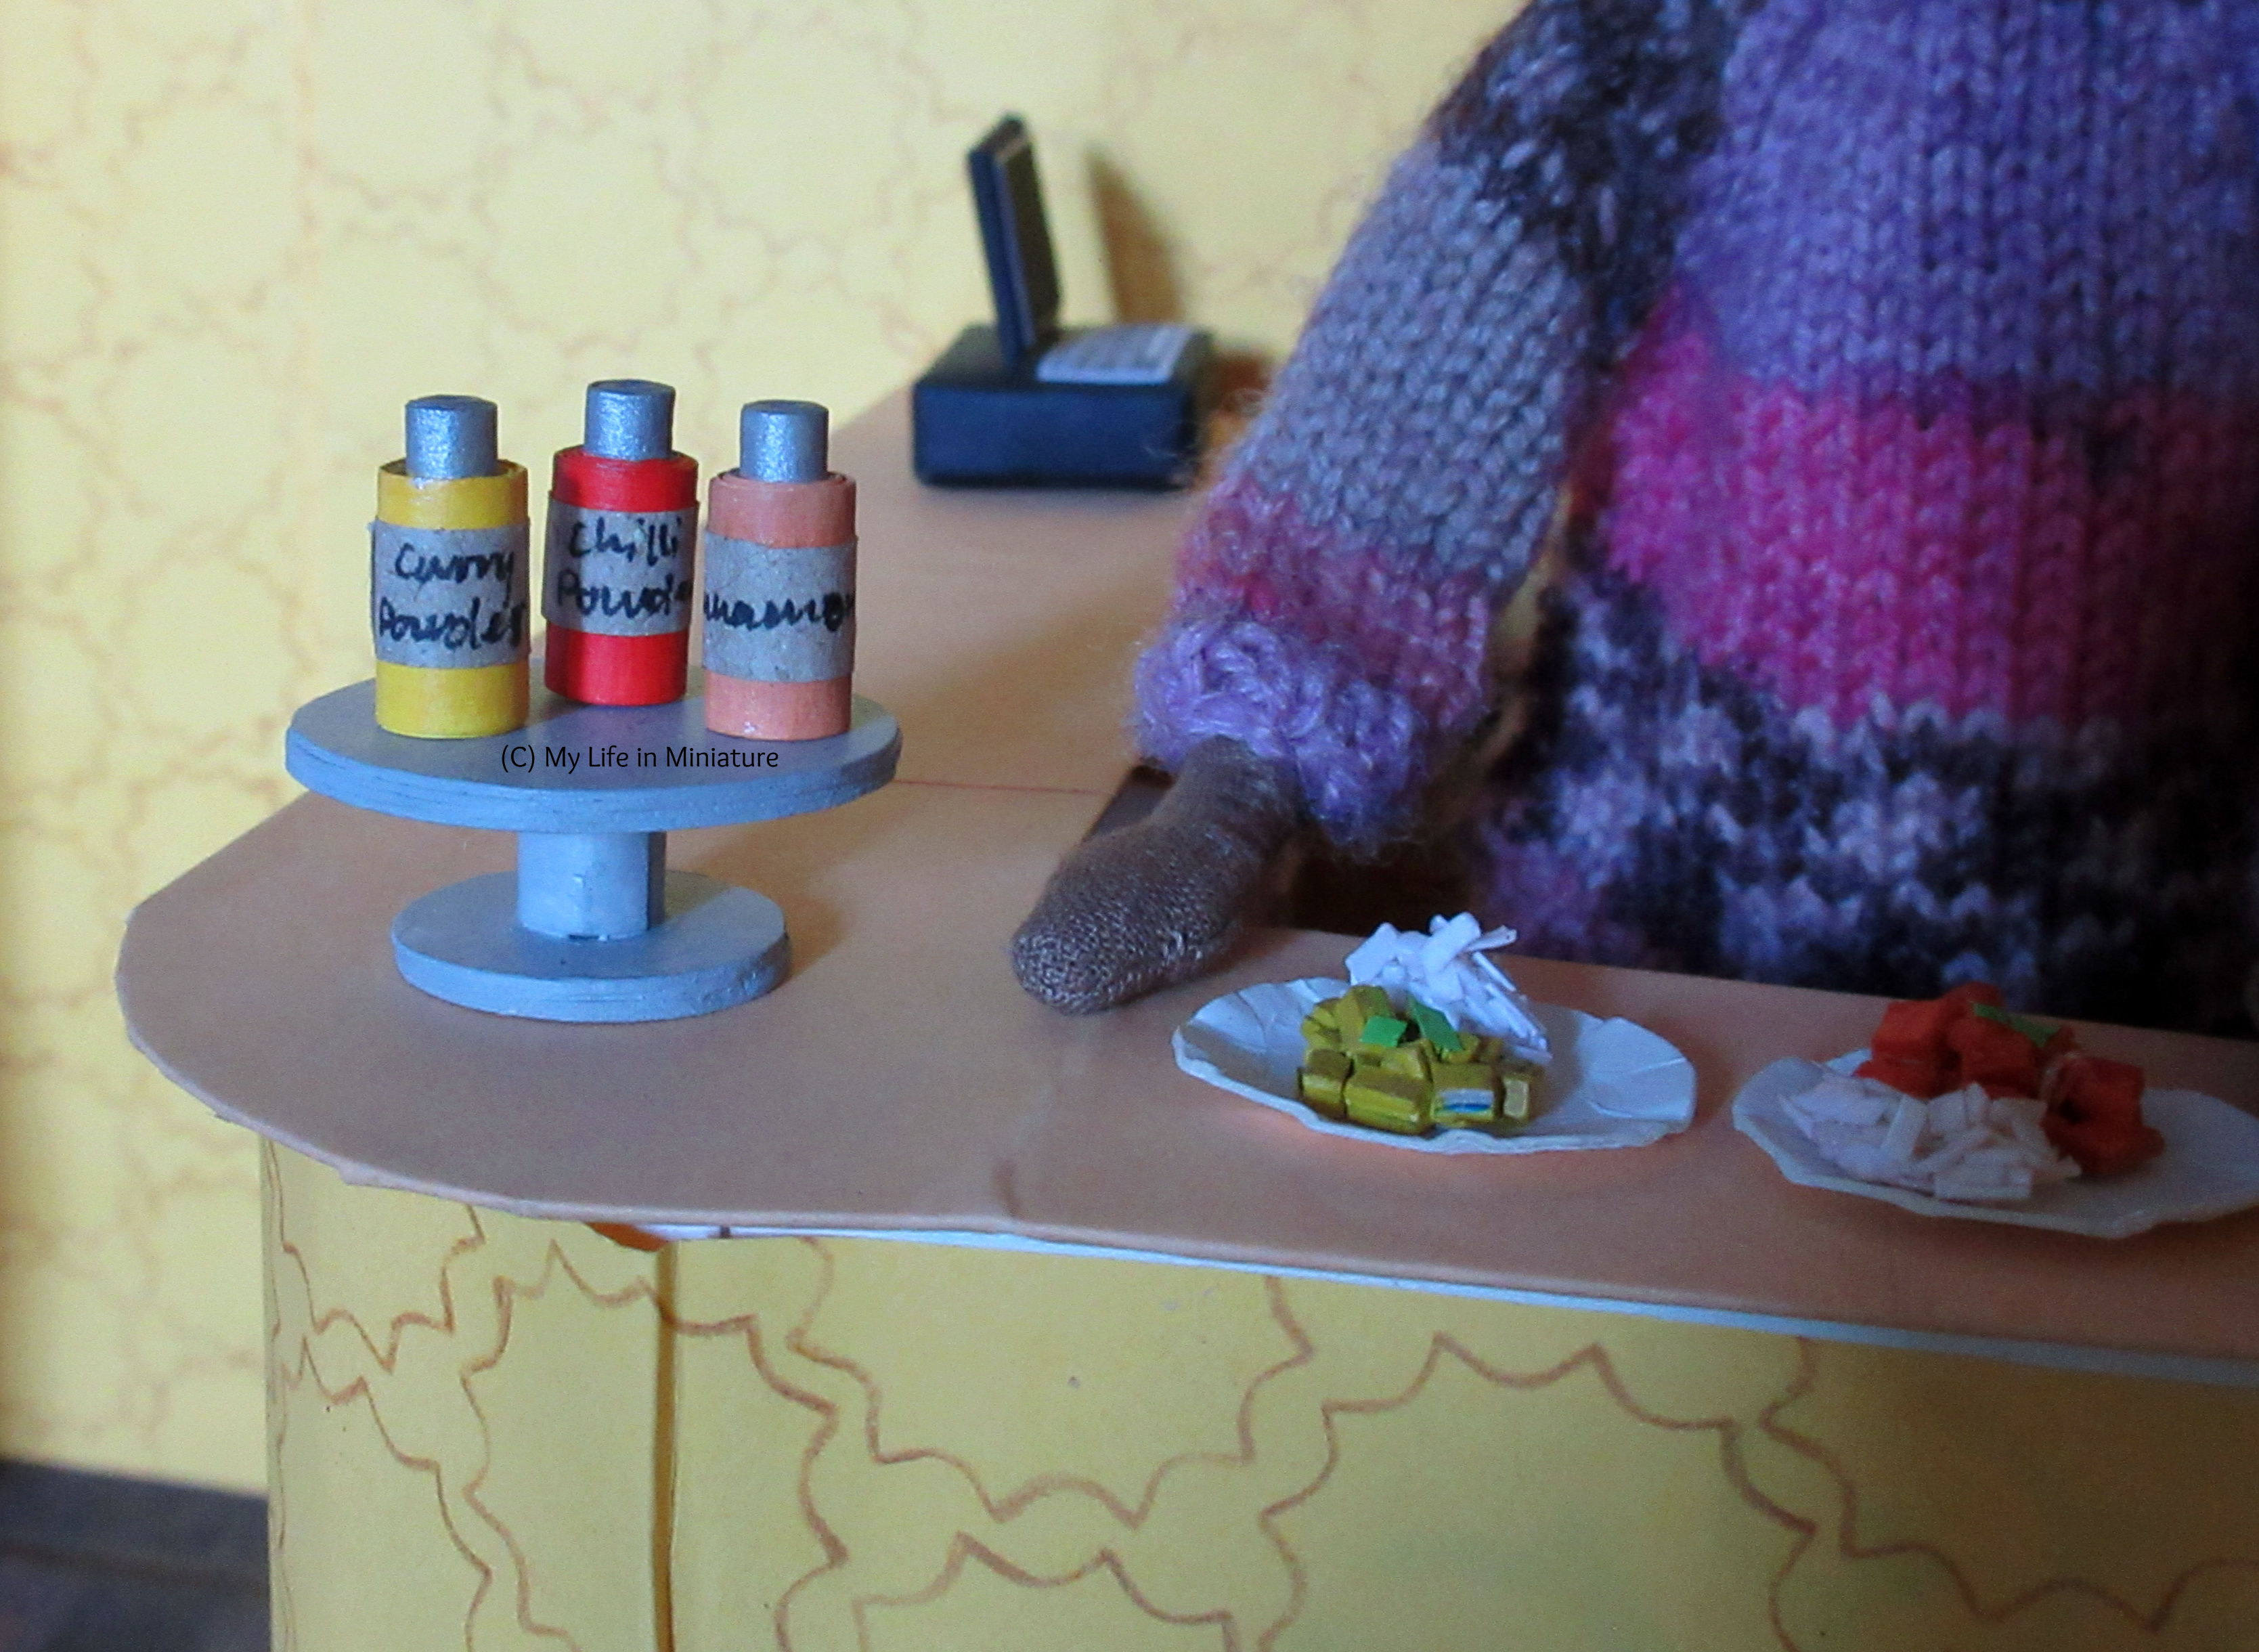 The silver cake stand is on the Tea at Yaz's counter, with the three jars on top. The curry powder jar is yellow; the chilli powder jar is red; the cinnamon jar is pale brown.